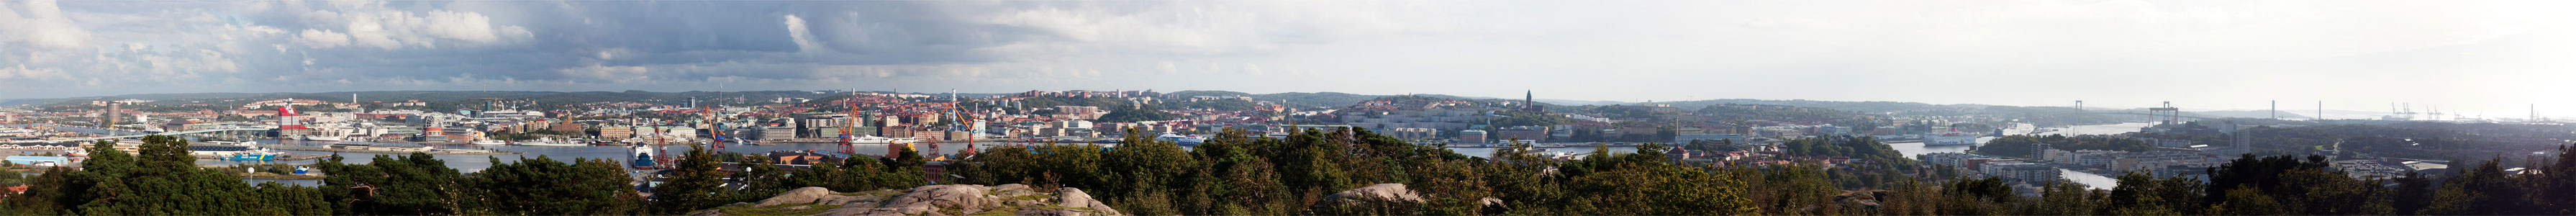 Panorama picture of Gothenburg